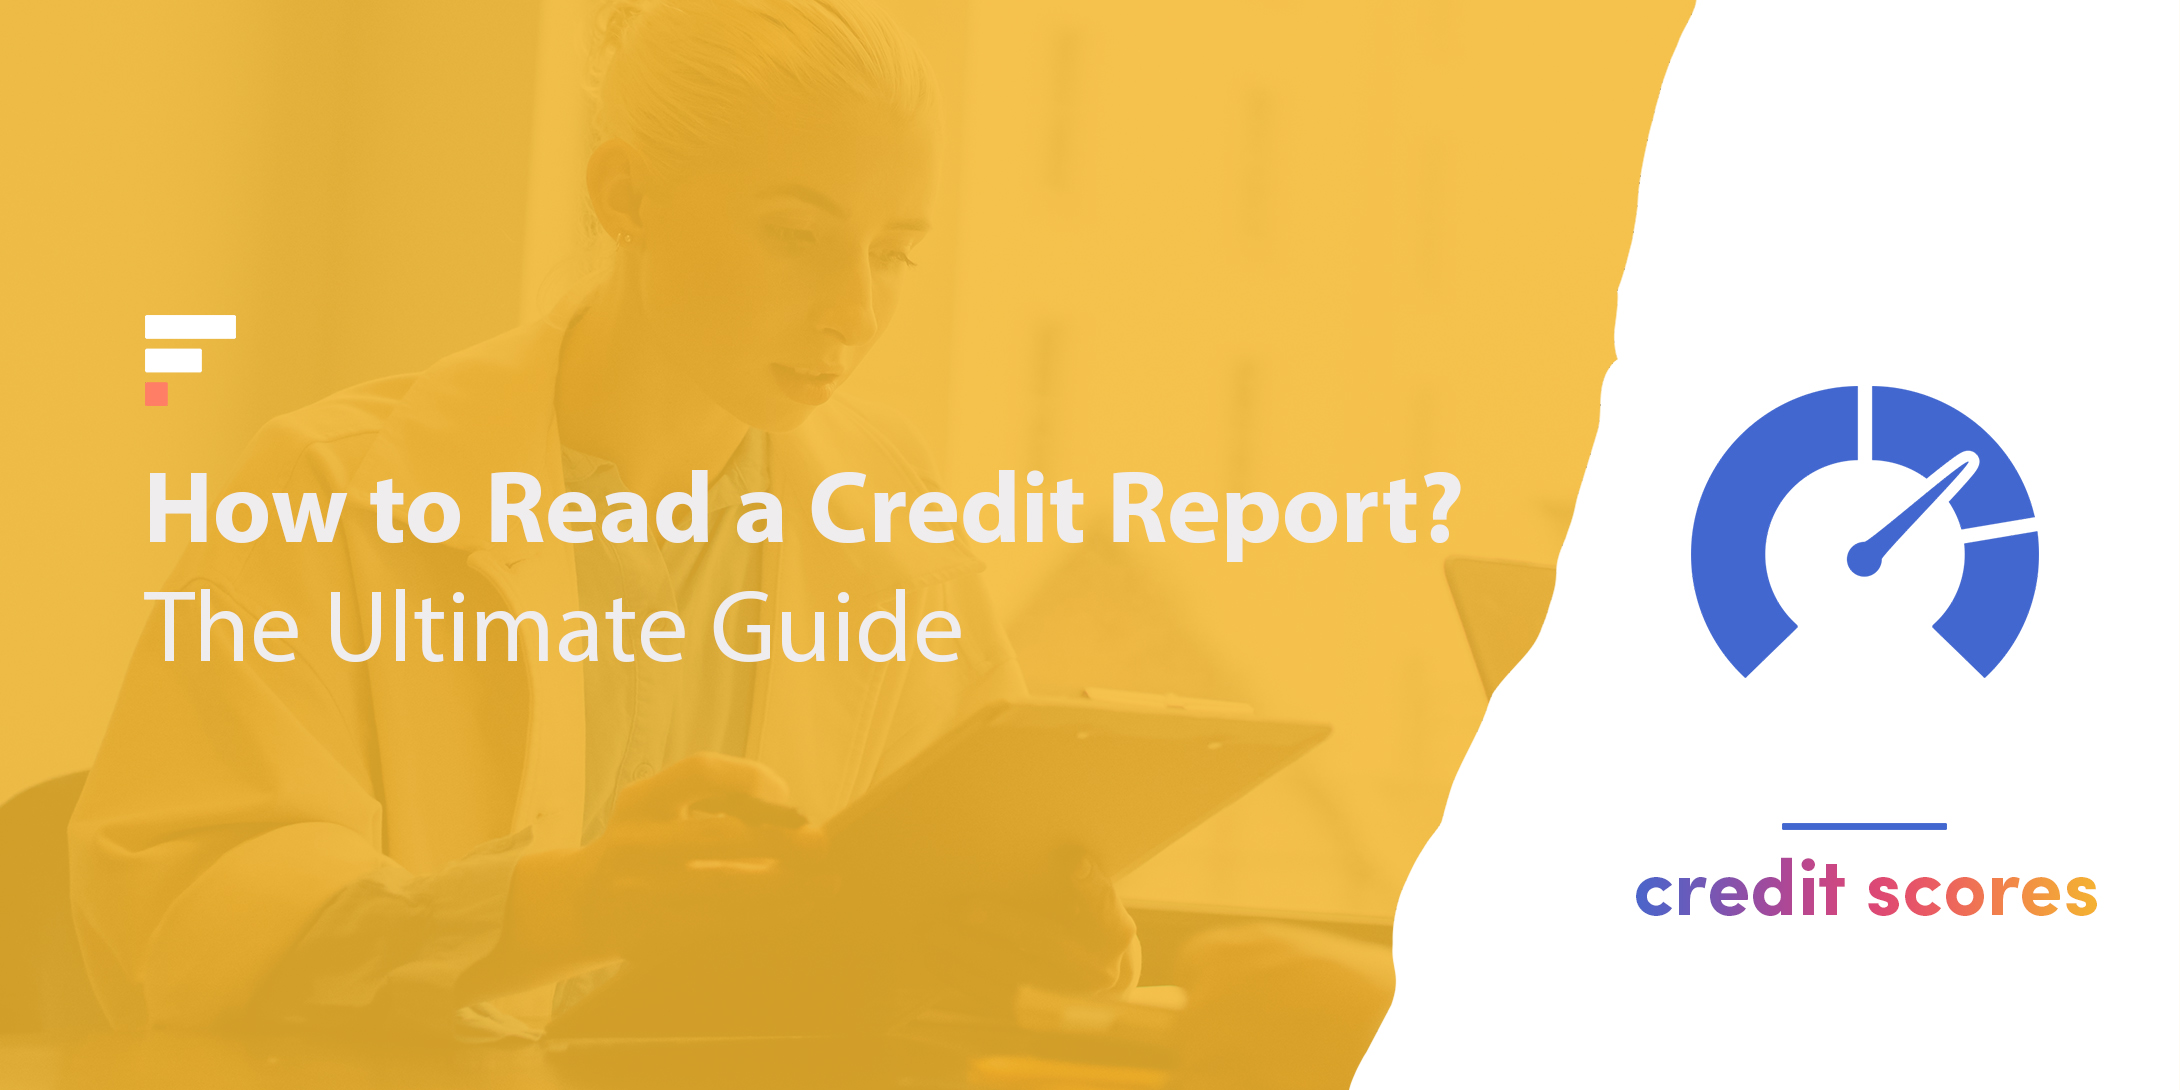 How to read a credit report?